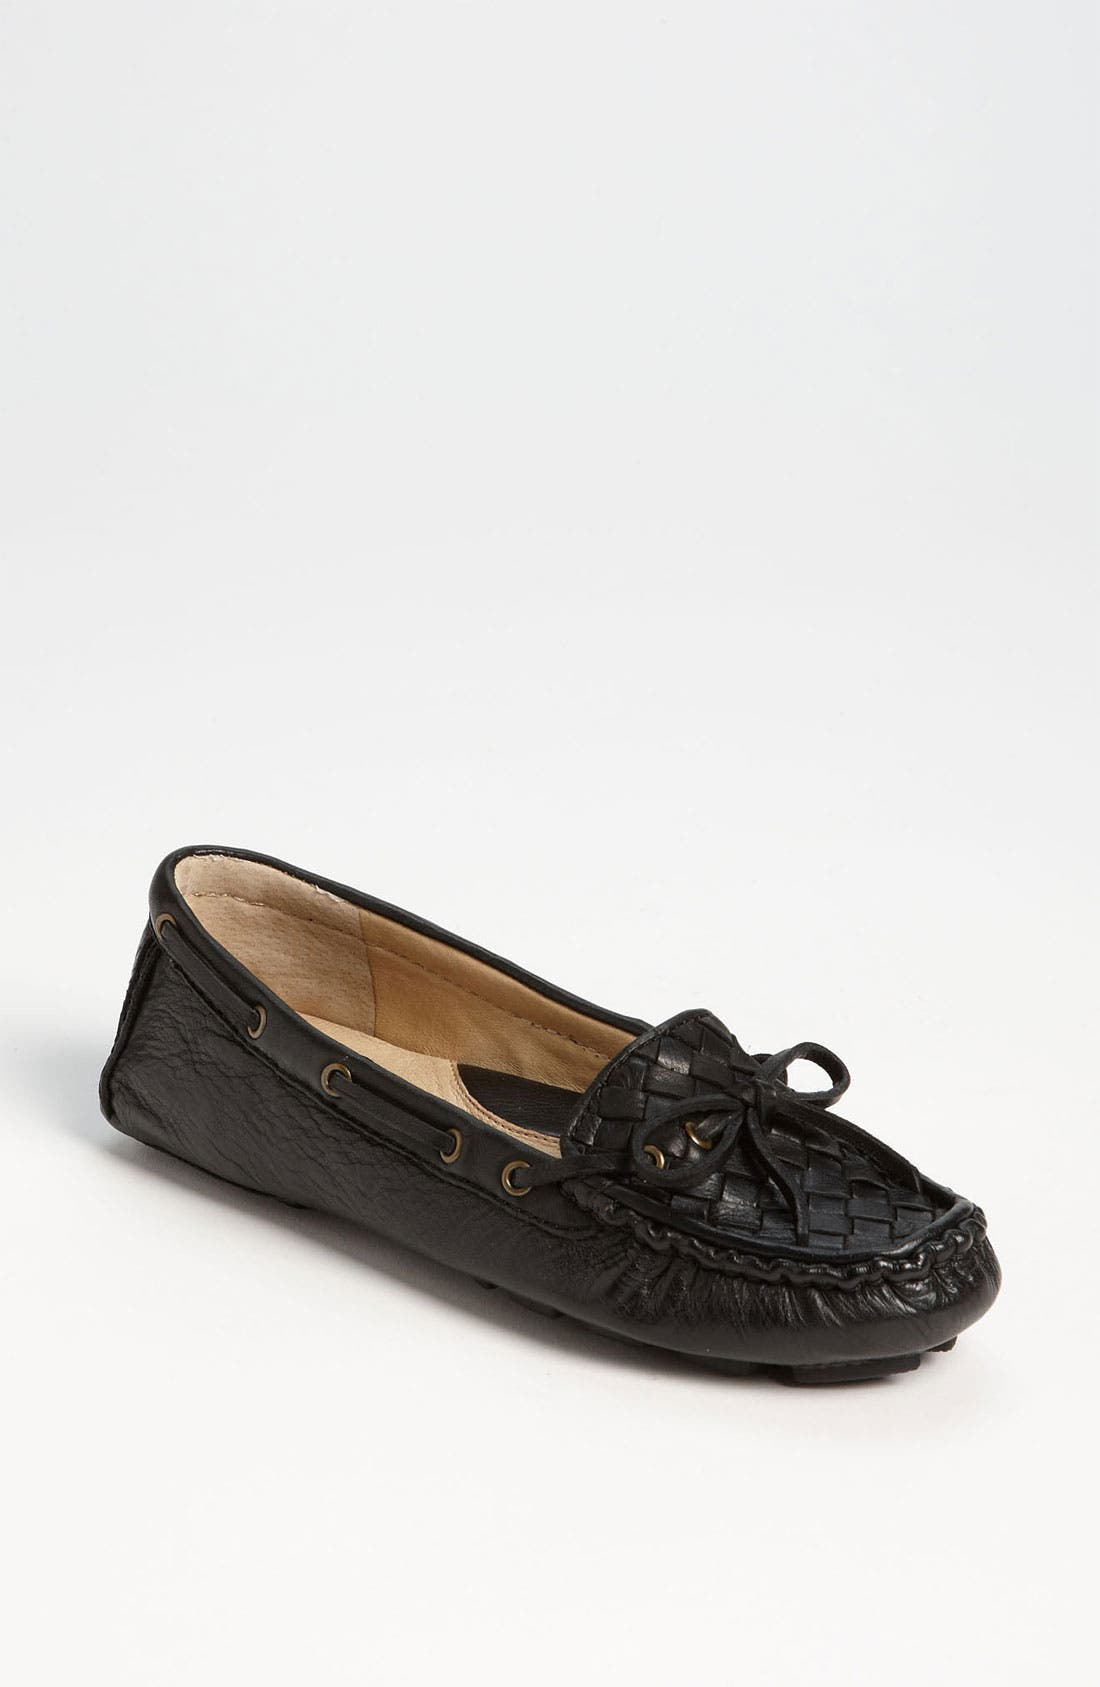 Alternate Image 1 Selected - Frye 'Reagan' Woven Flat (Online Only)